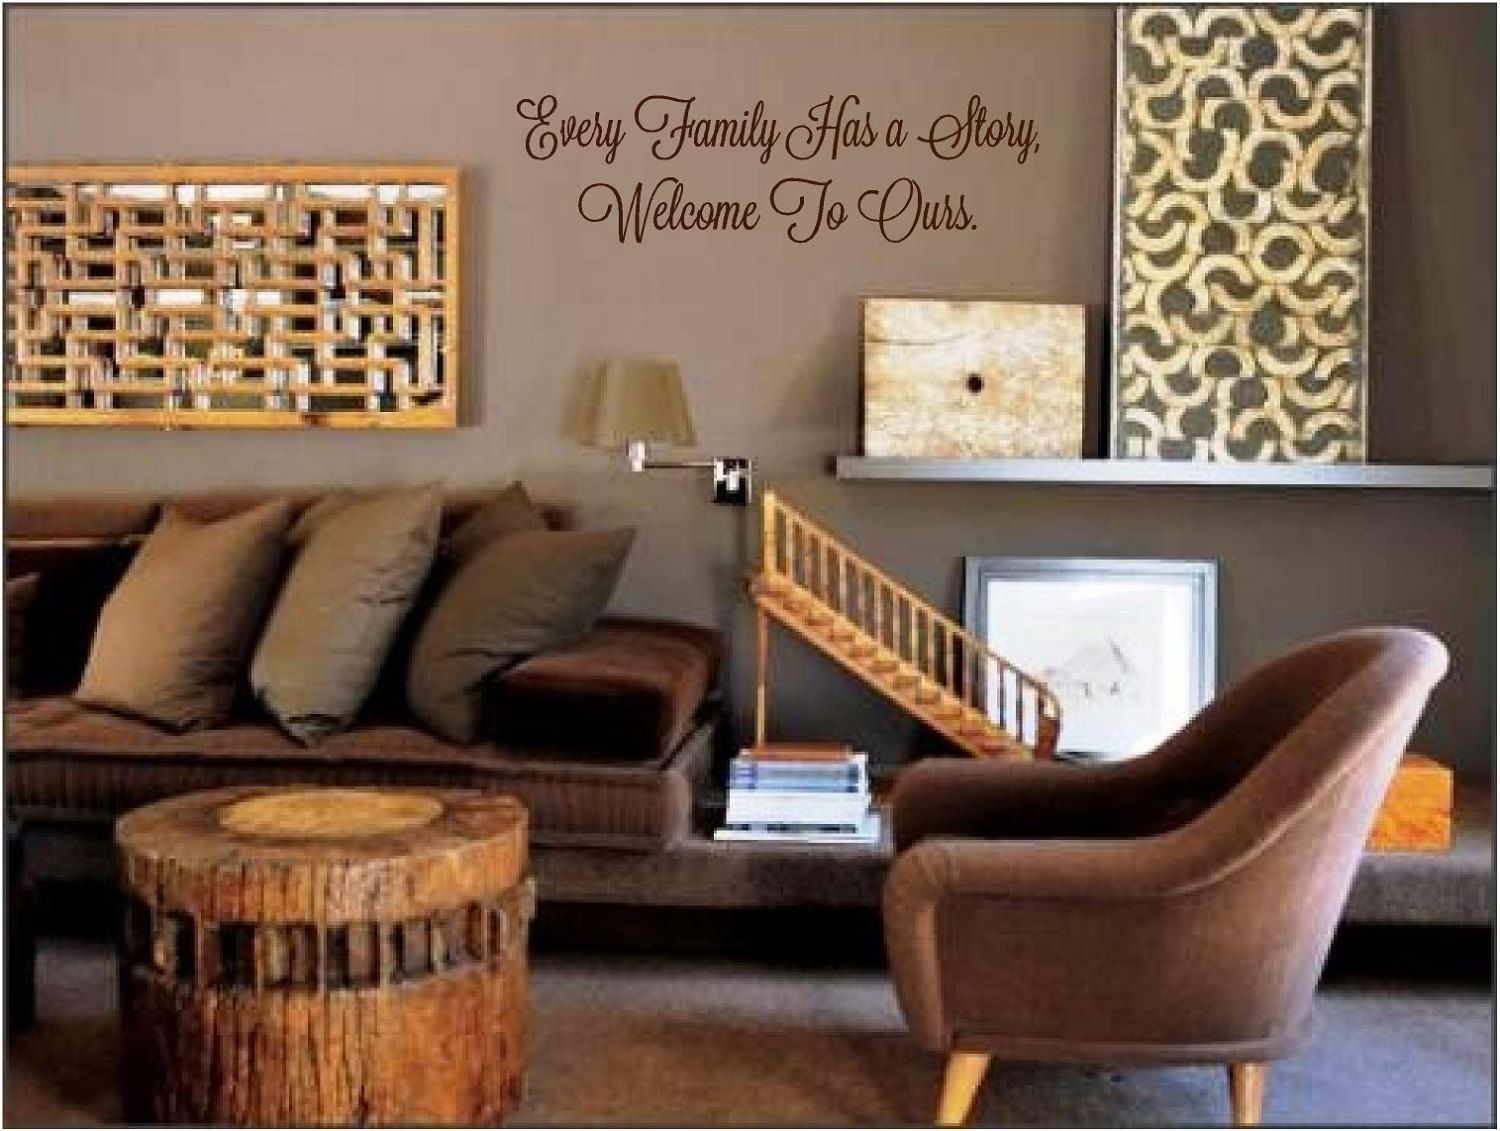 Every family has a story welcome to ours vinyl wall art decal